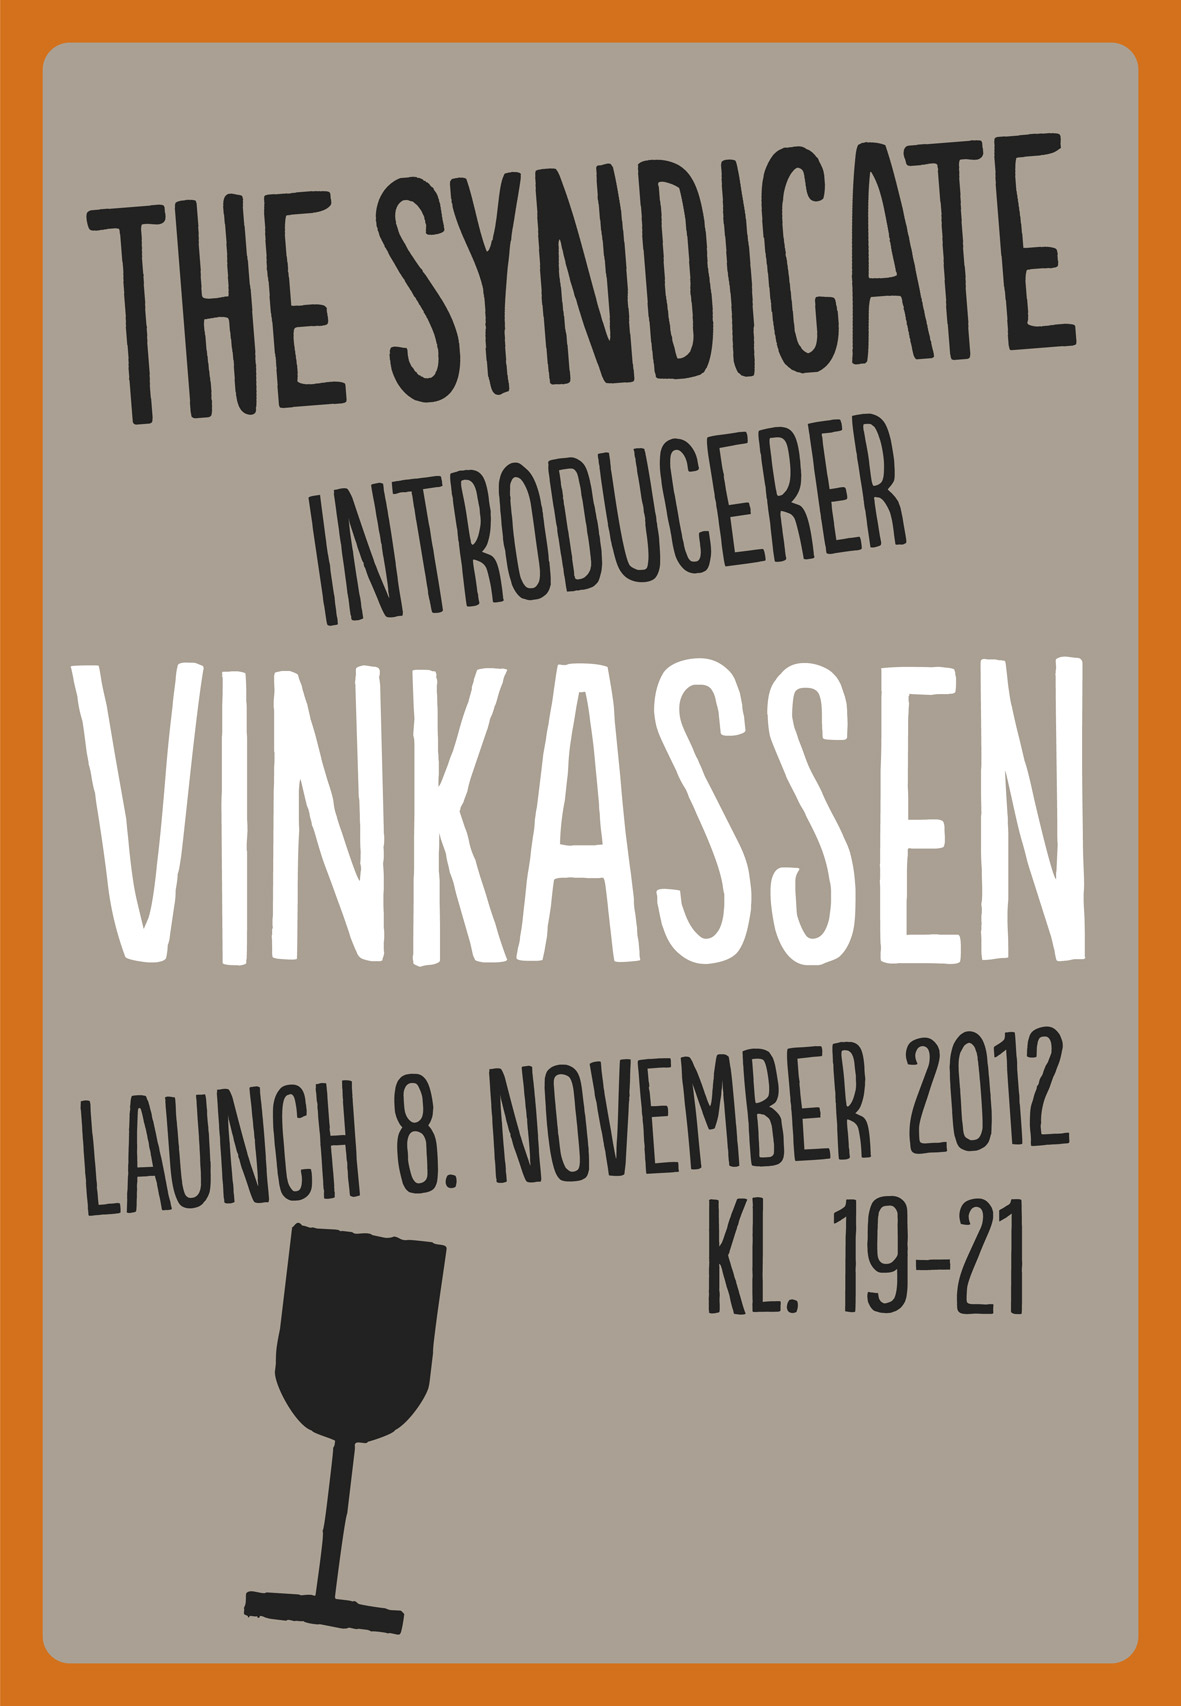 The Syndicate Poster  ©lowereast.dk